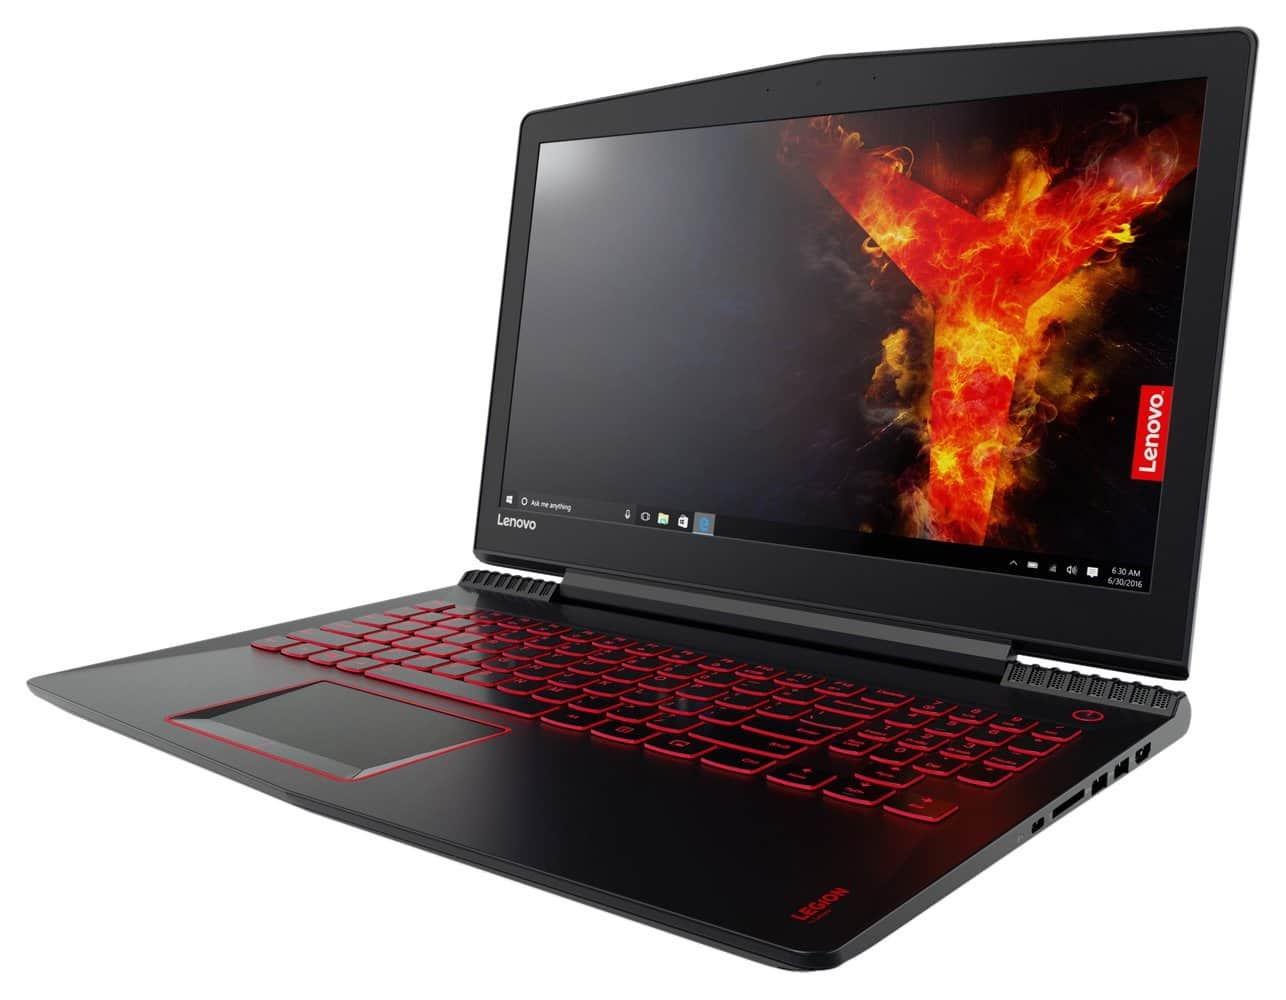 "Lenovo Y520 15.6"" Gaming Laptop - 1050 Ti 4GB, i5-7300HQ, 8GB RAM, 256GB PCIe $879.99"